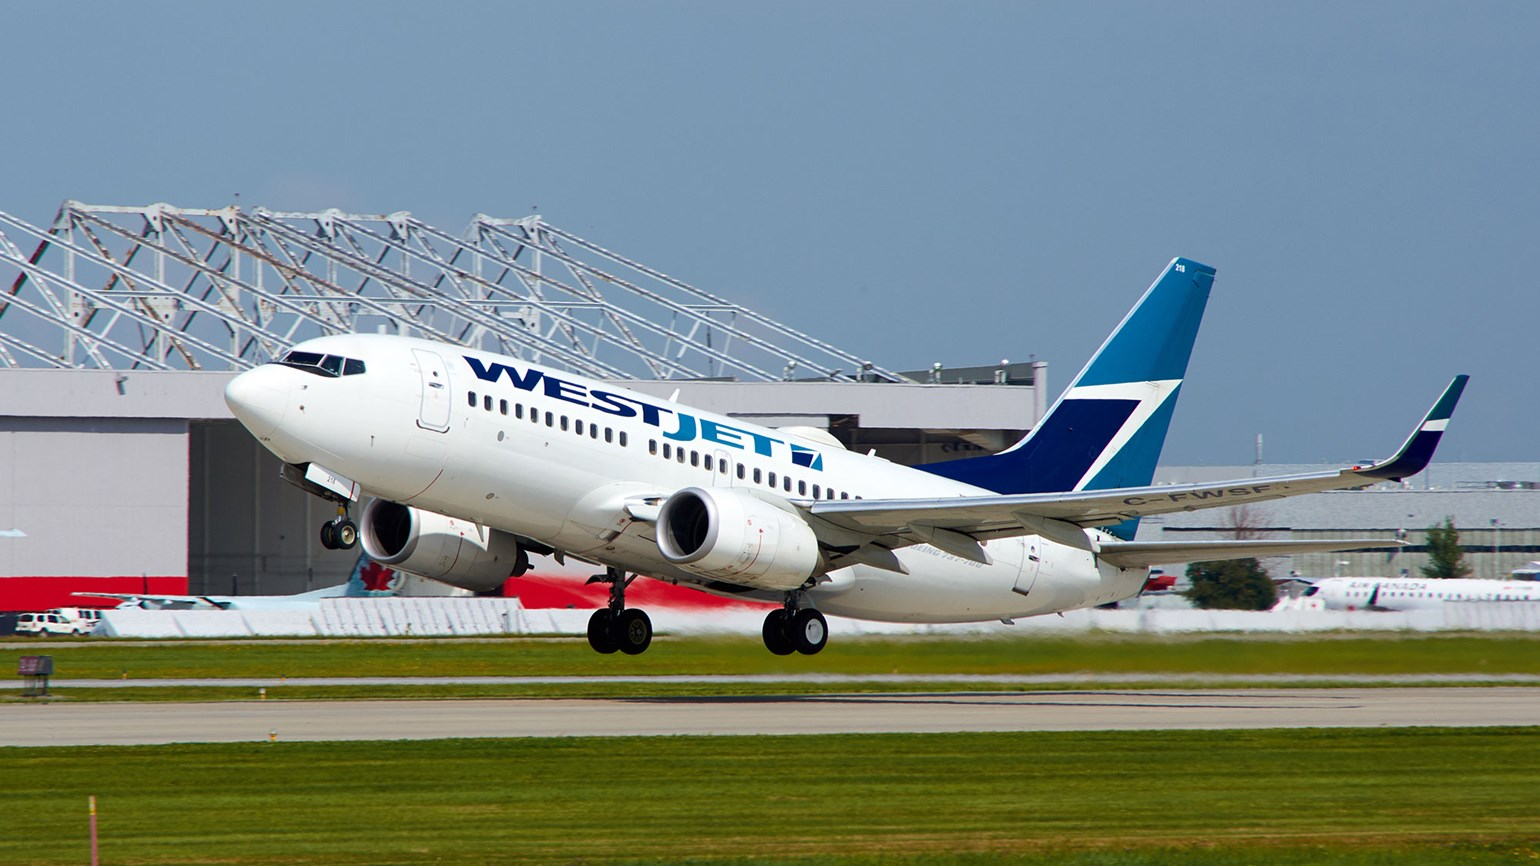 WestJet to refund all passengers on flights canceled due to Covid-19